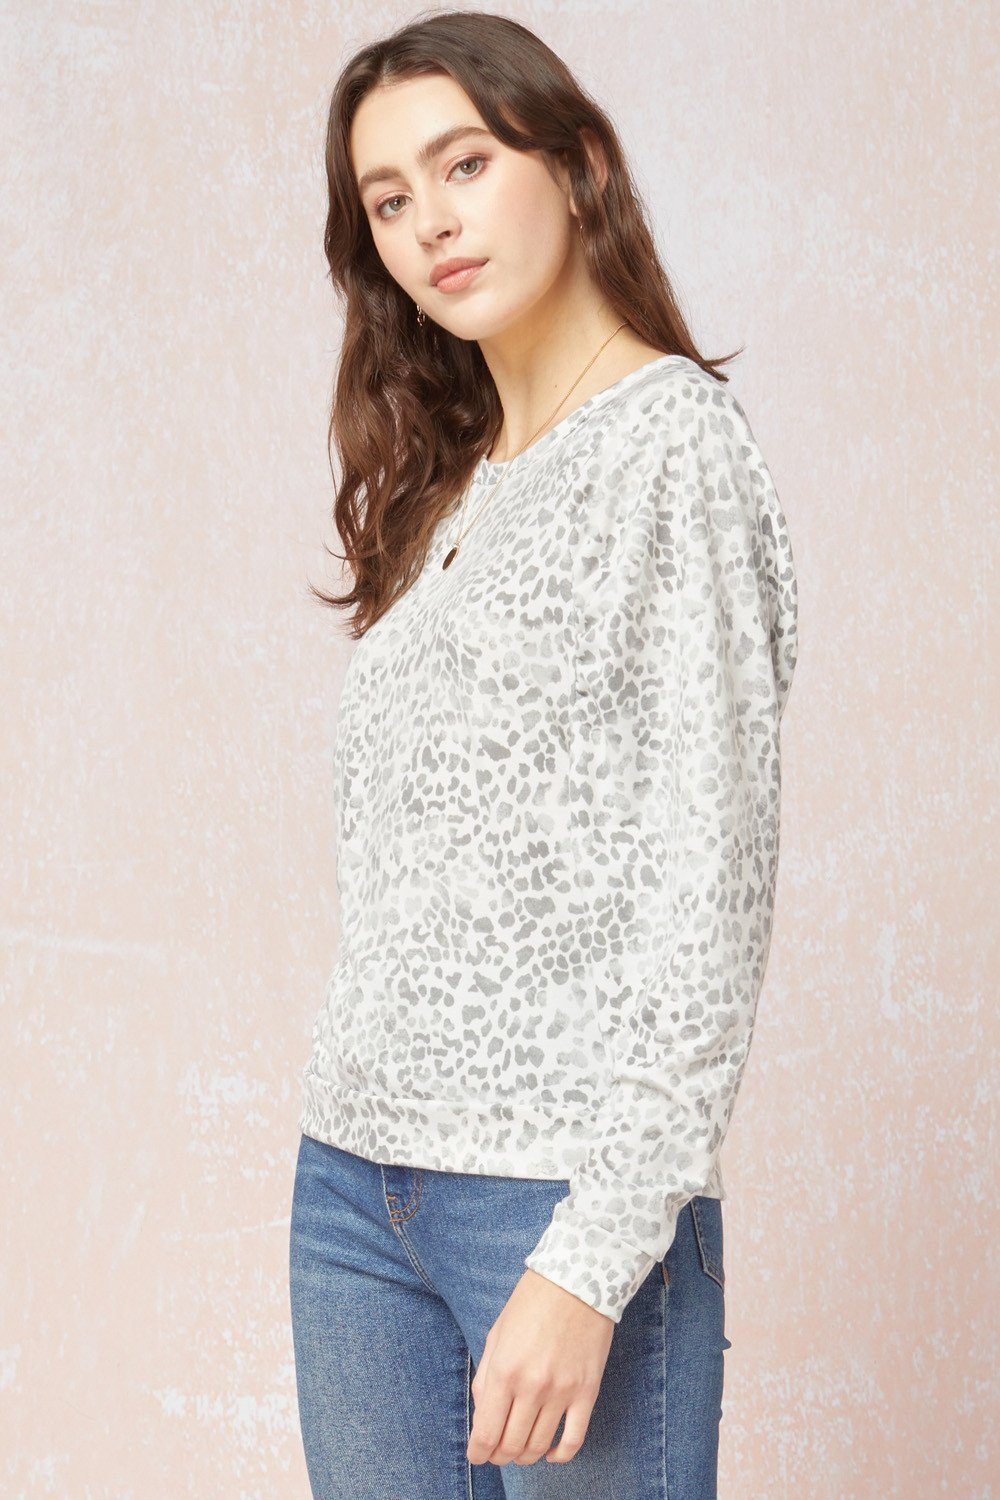 Leopard Puff Sleeve Top - Caroline Hill